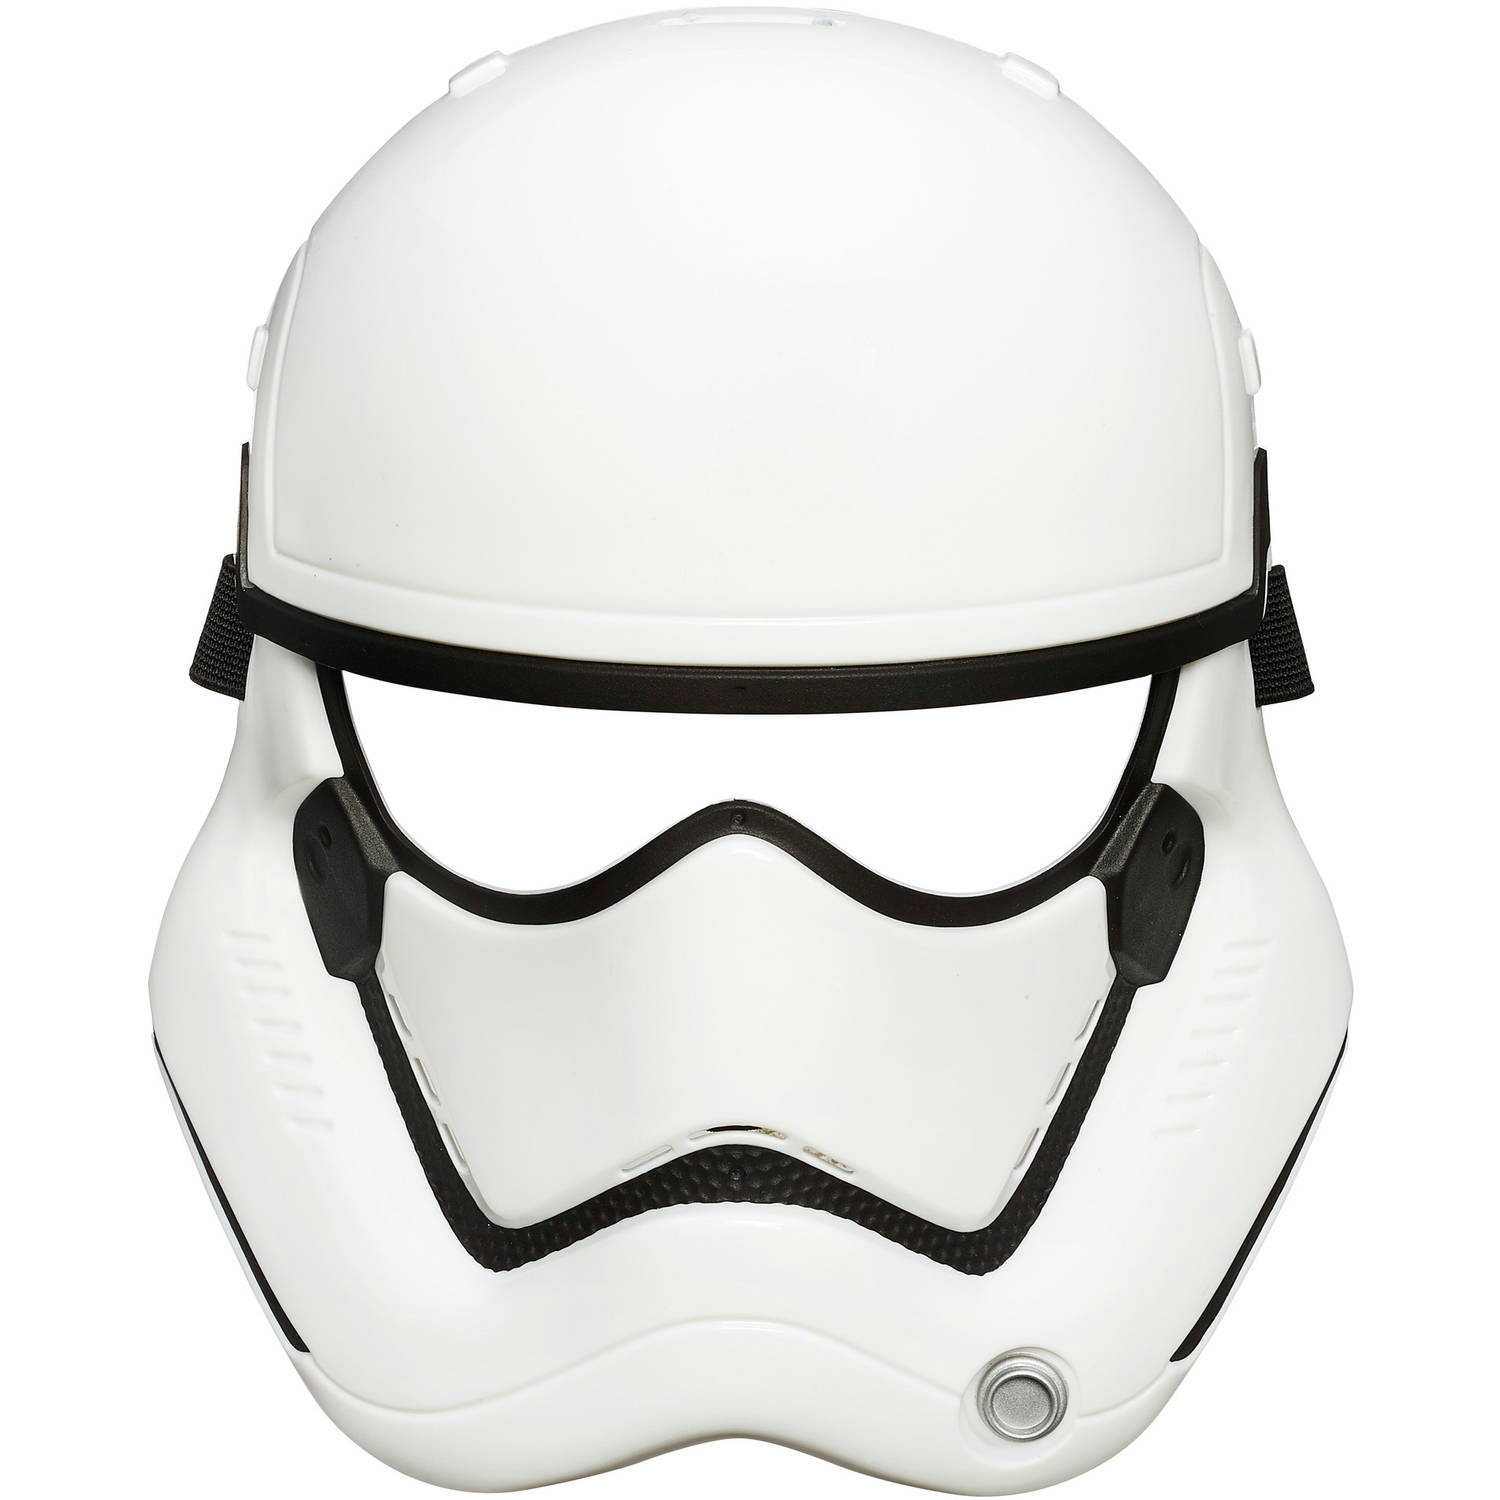 Star Wars First Order Strormtrooper Mask Costume Accessory